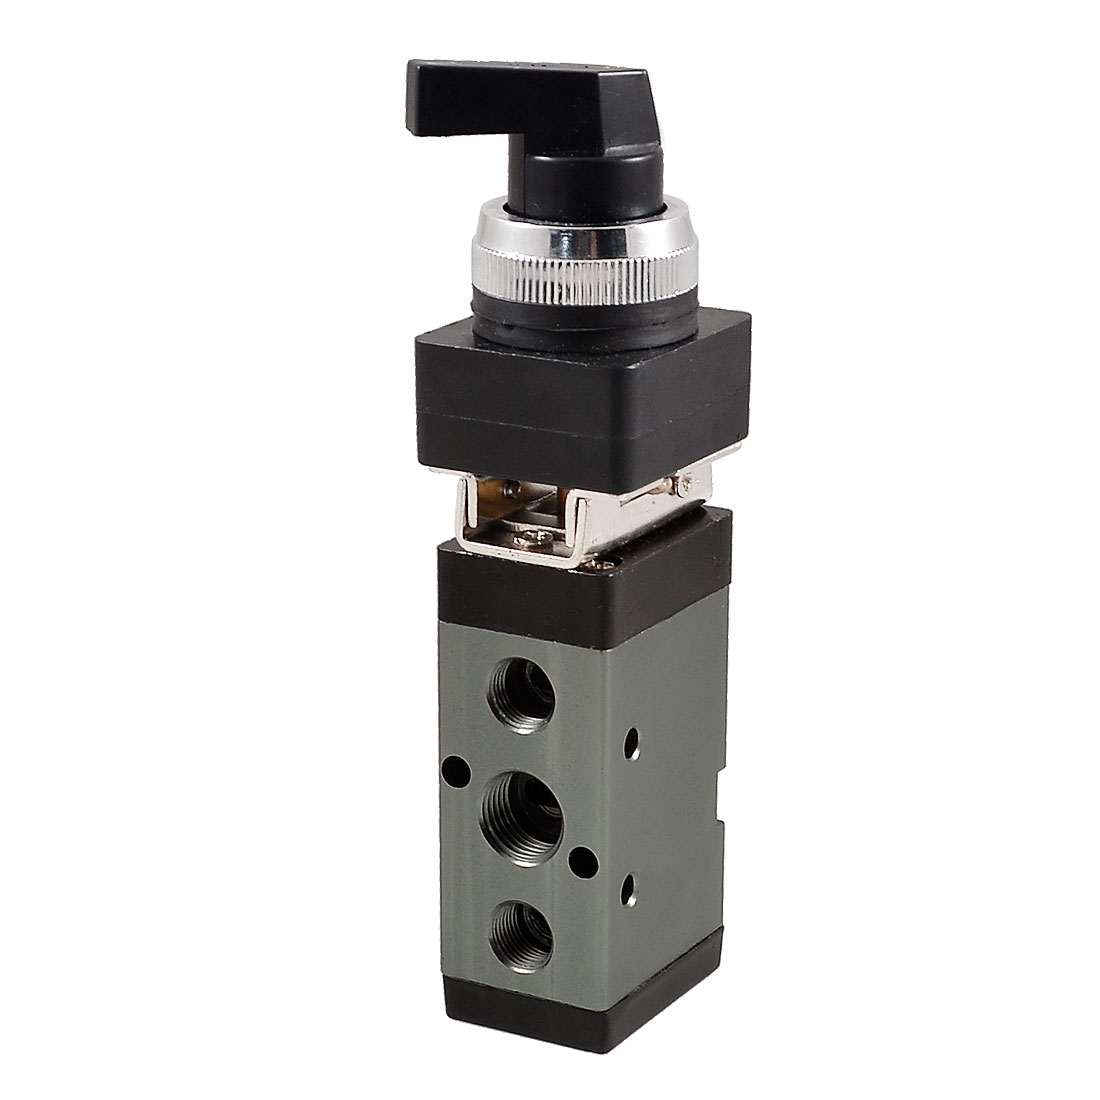 MSV-86522LB 5 Way 2 Position Hand Operation Pneumatic Air Solenoid Valve